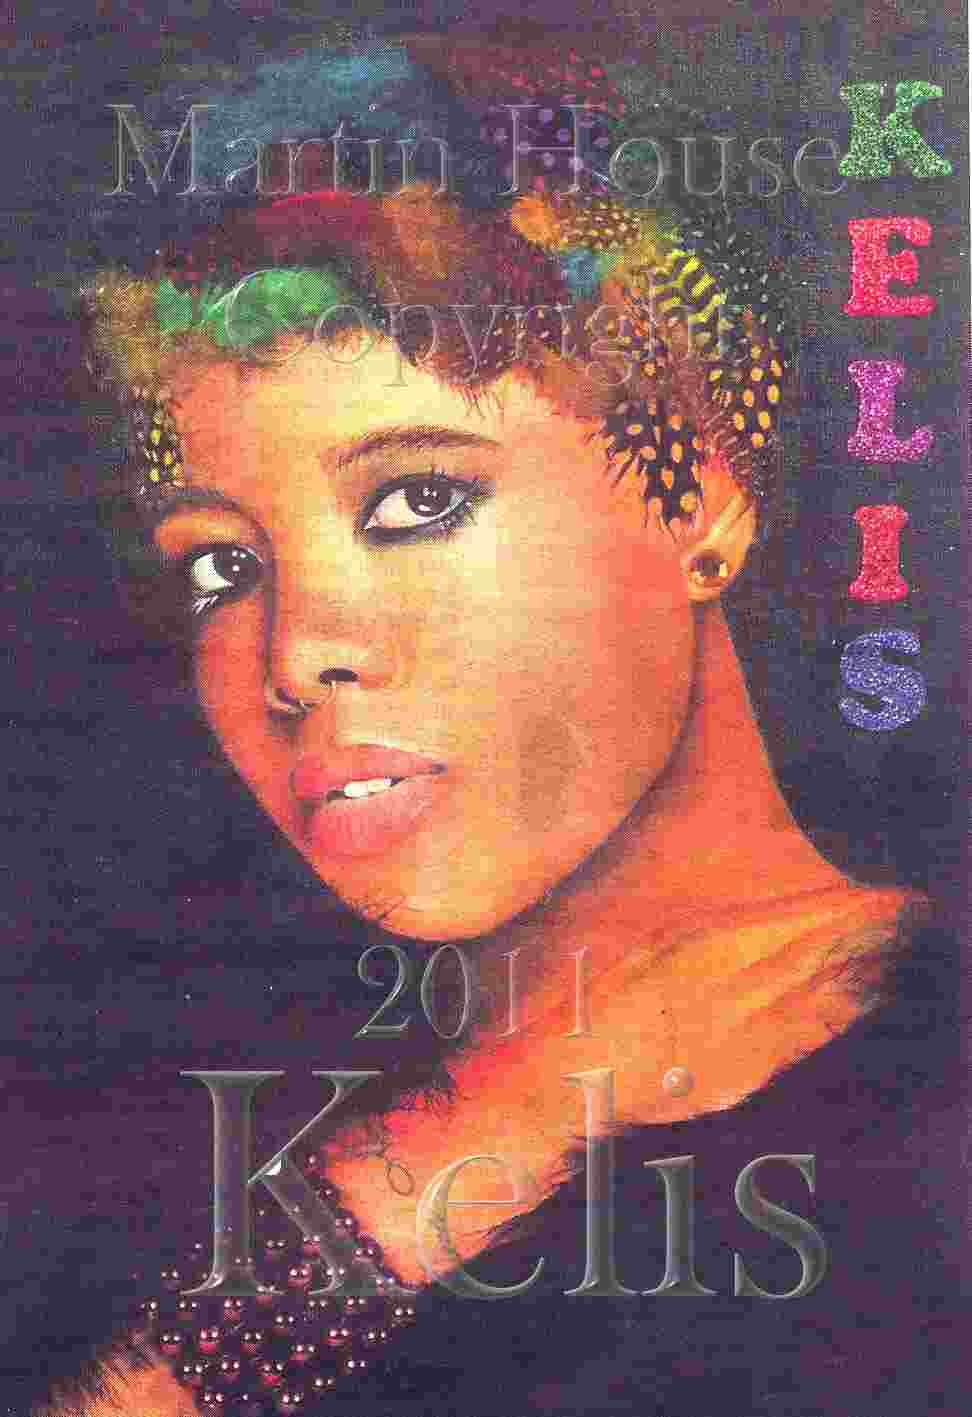 Kelis, wearing bird feathers, by Martin House